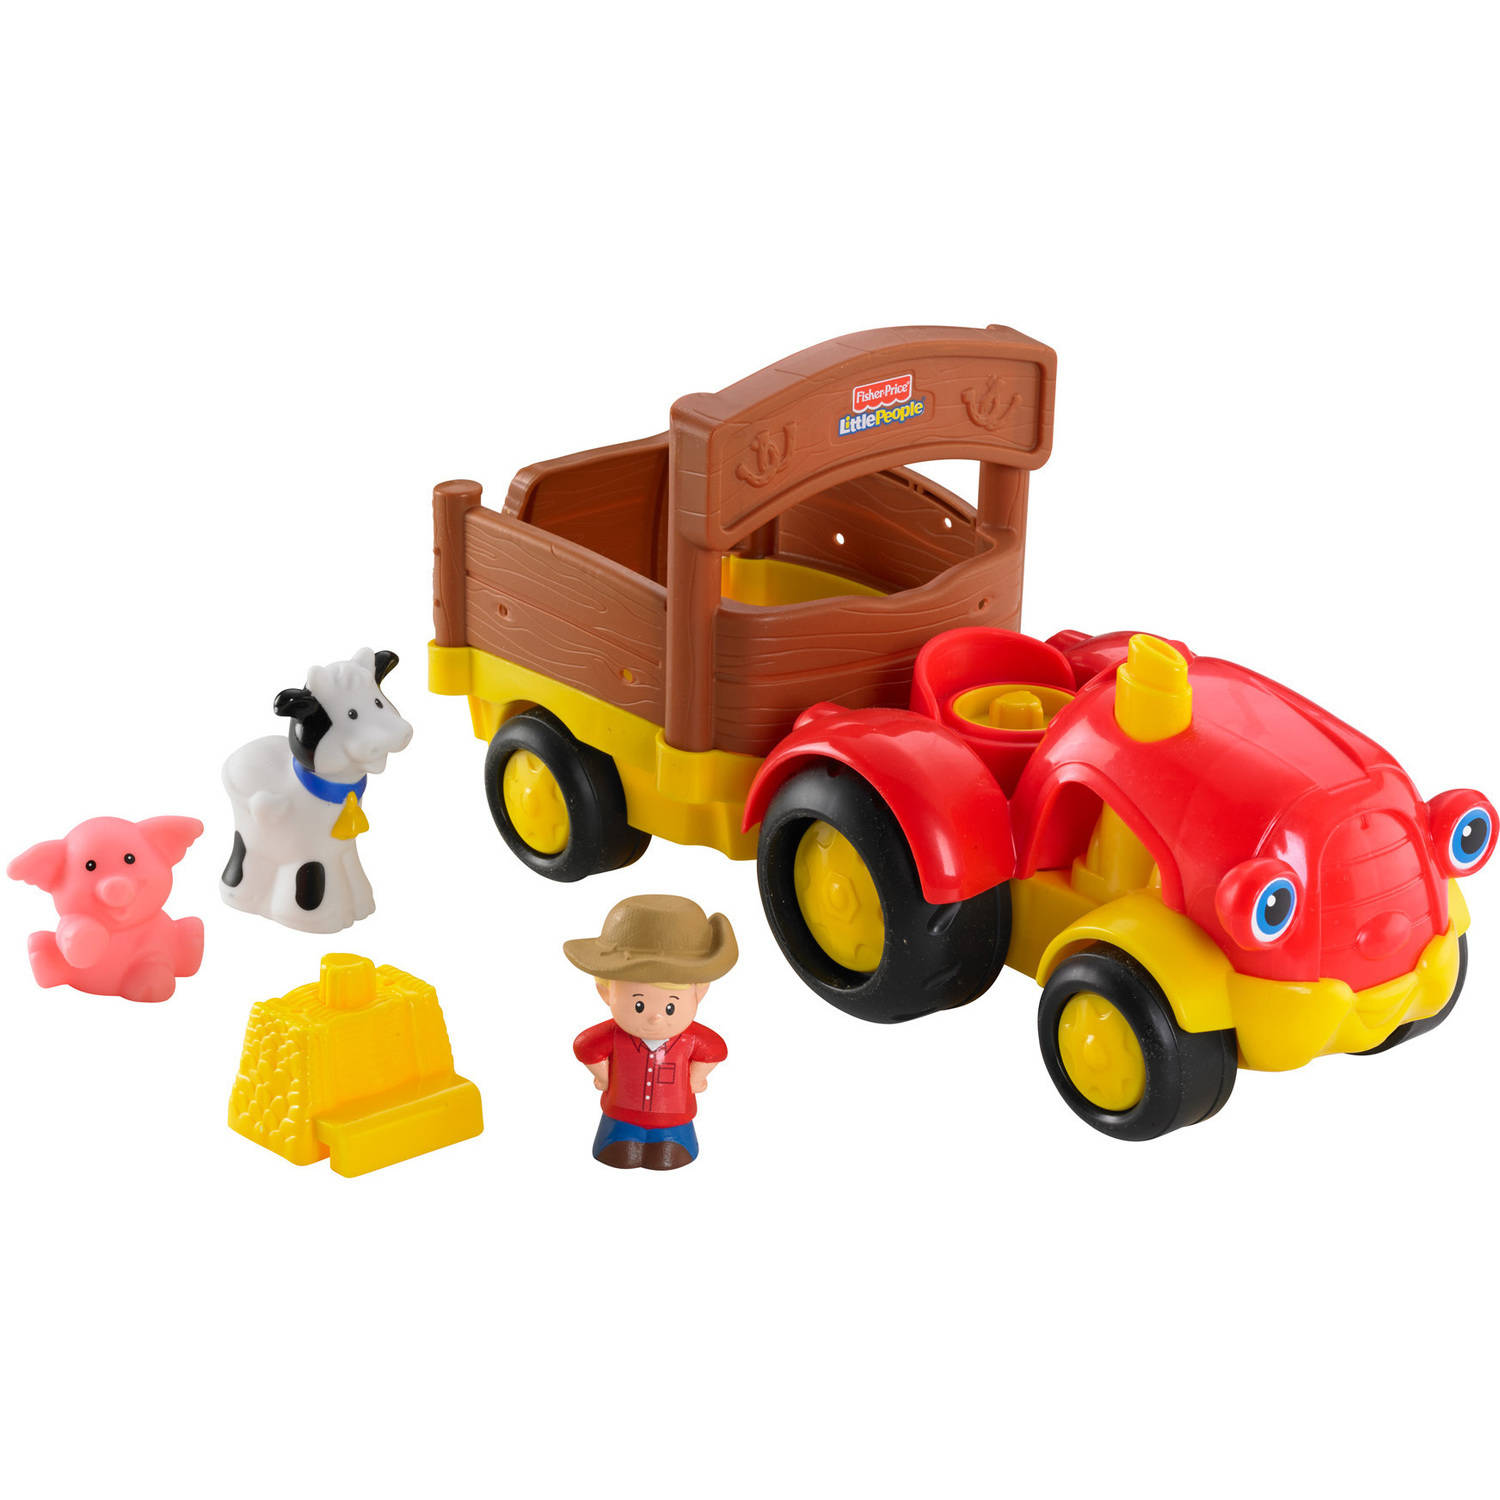 Little People Tow 'n Pull Tractor by Little People